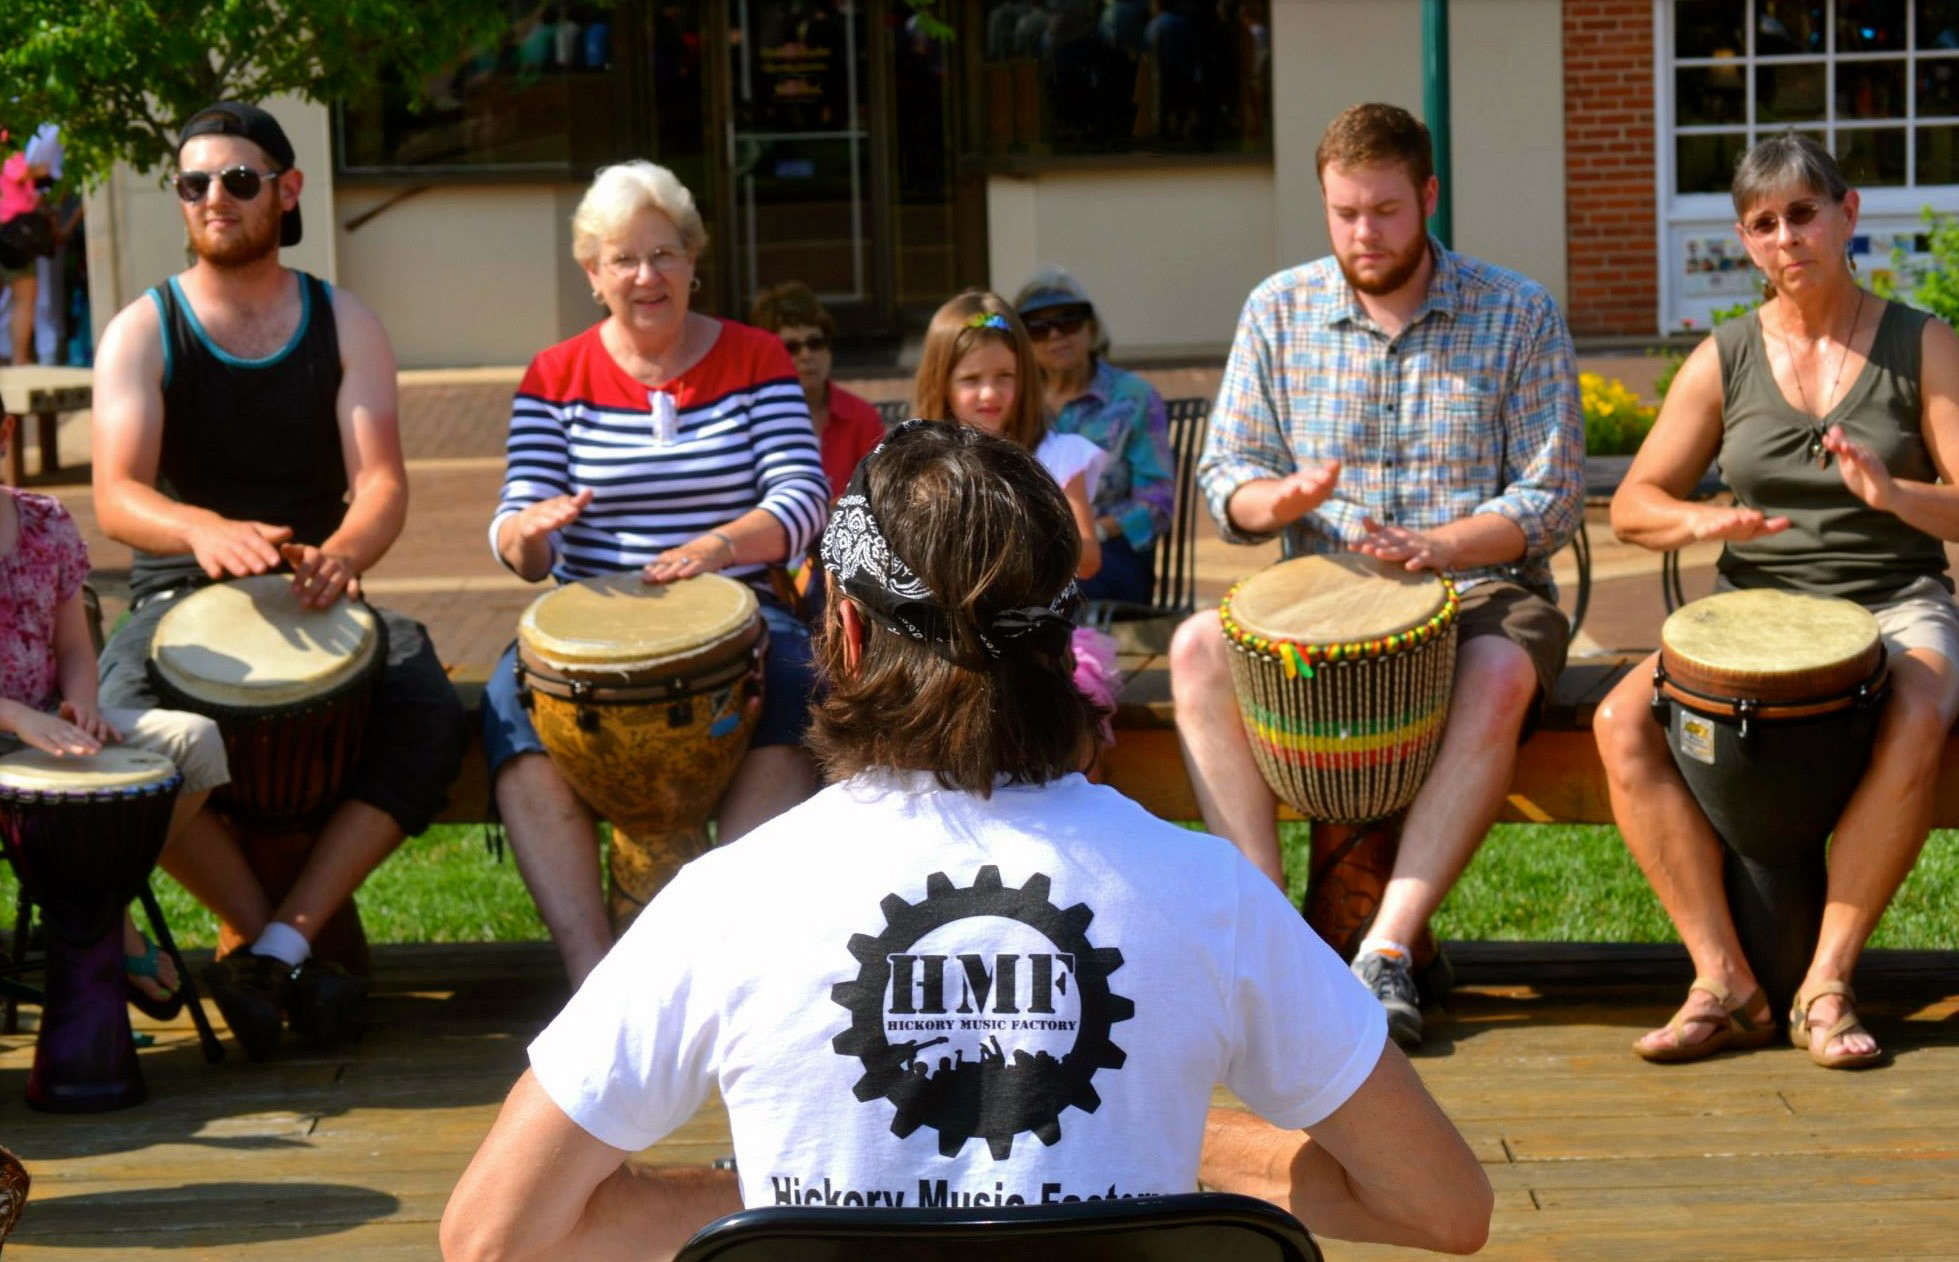 Drumming with the Hickory Music Factory